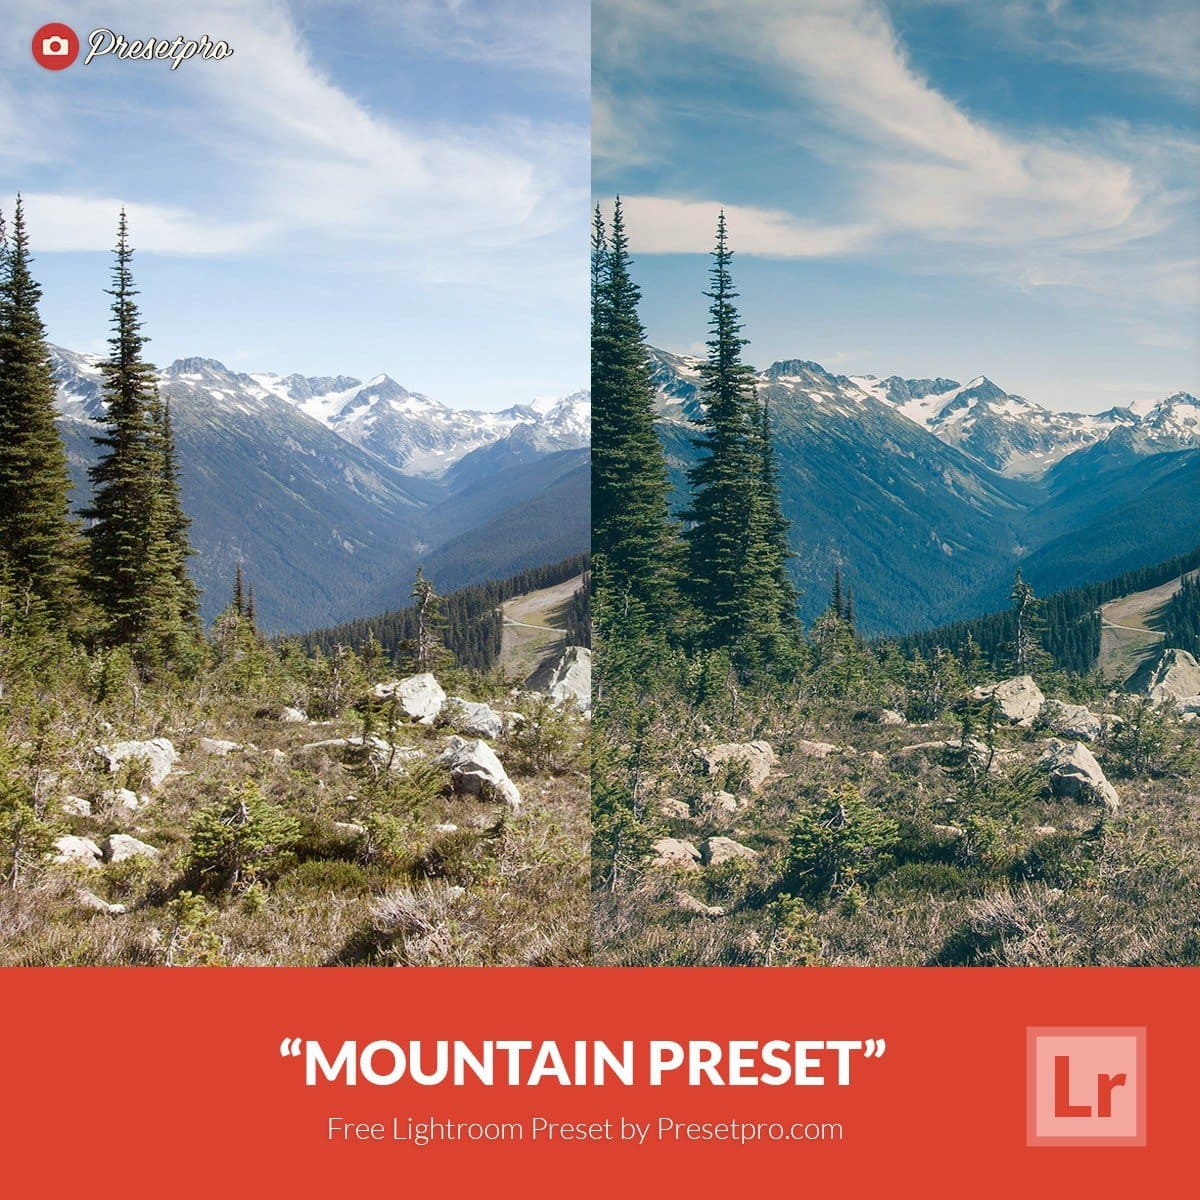 Free-Lightroom-Preset-Mountain-Presetpro.com